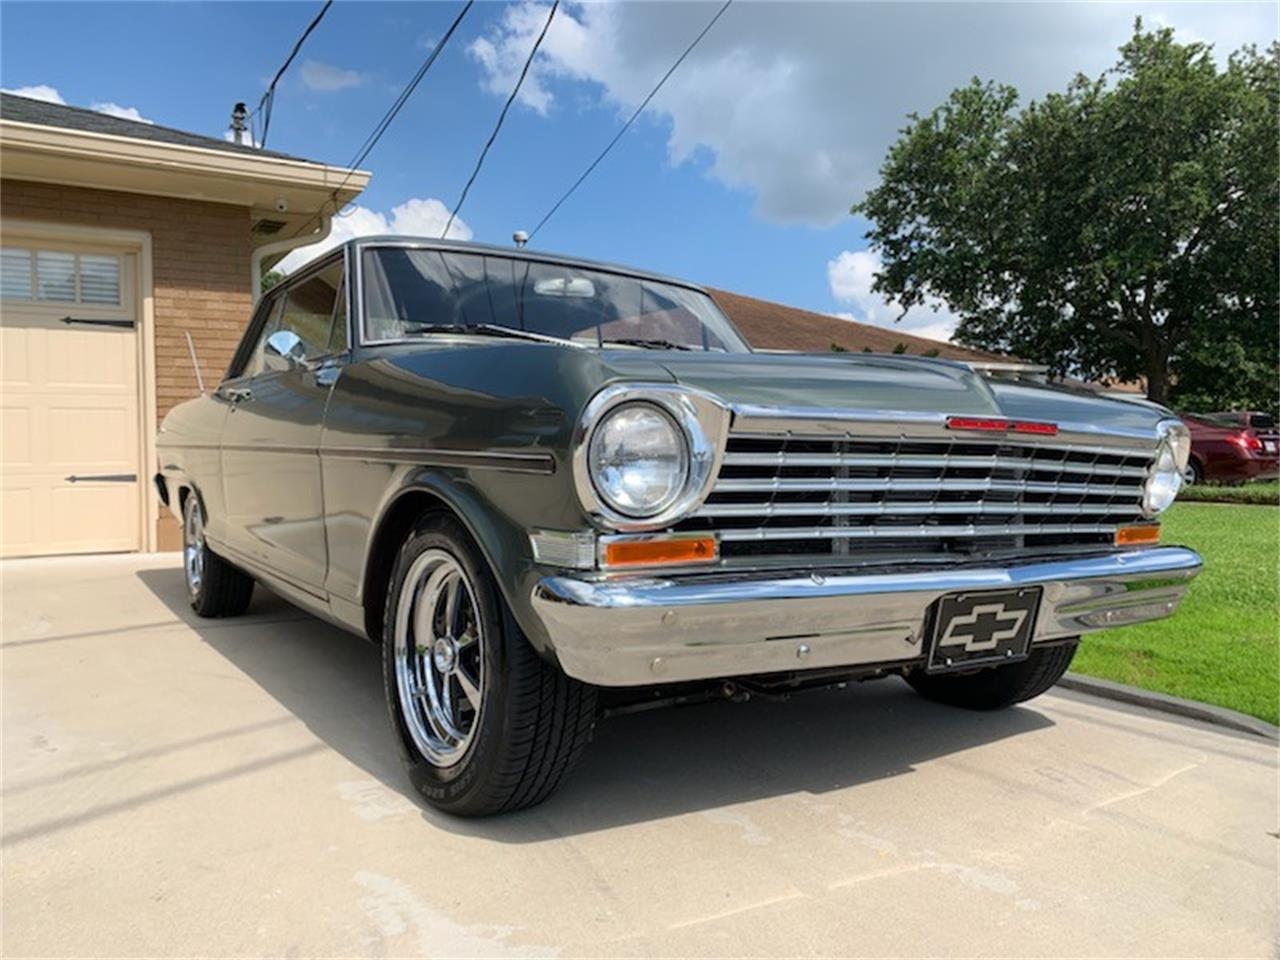 1963 Chevrolet Chevy II Nova SS for sale in Metairie, LA – photo 3